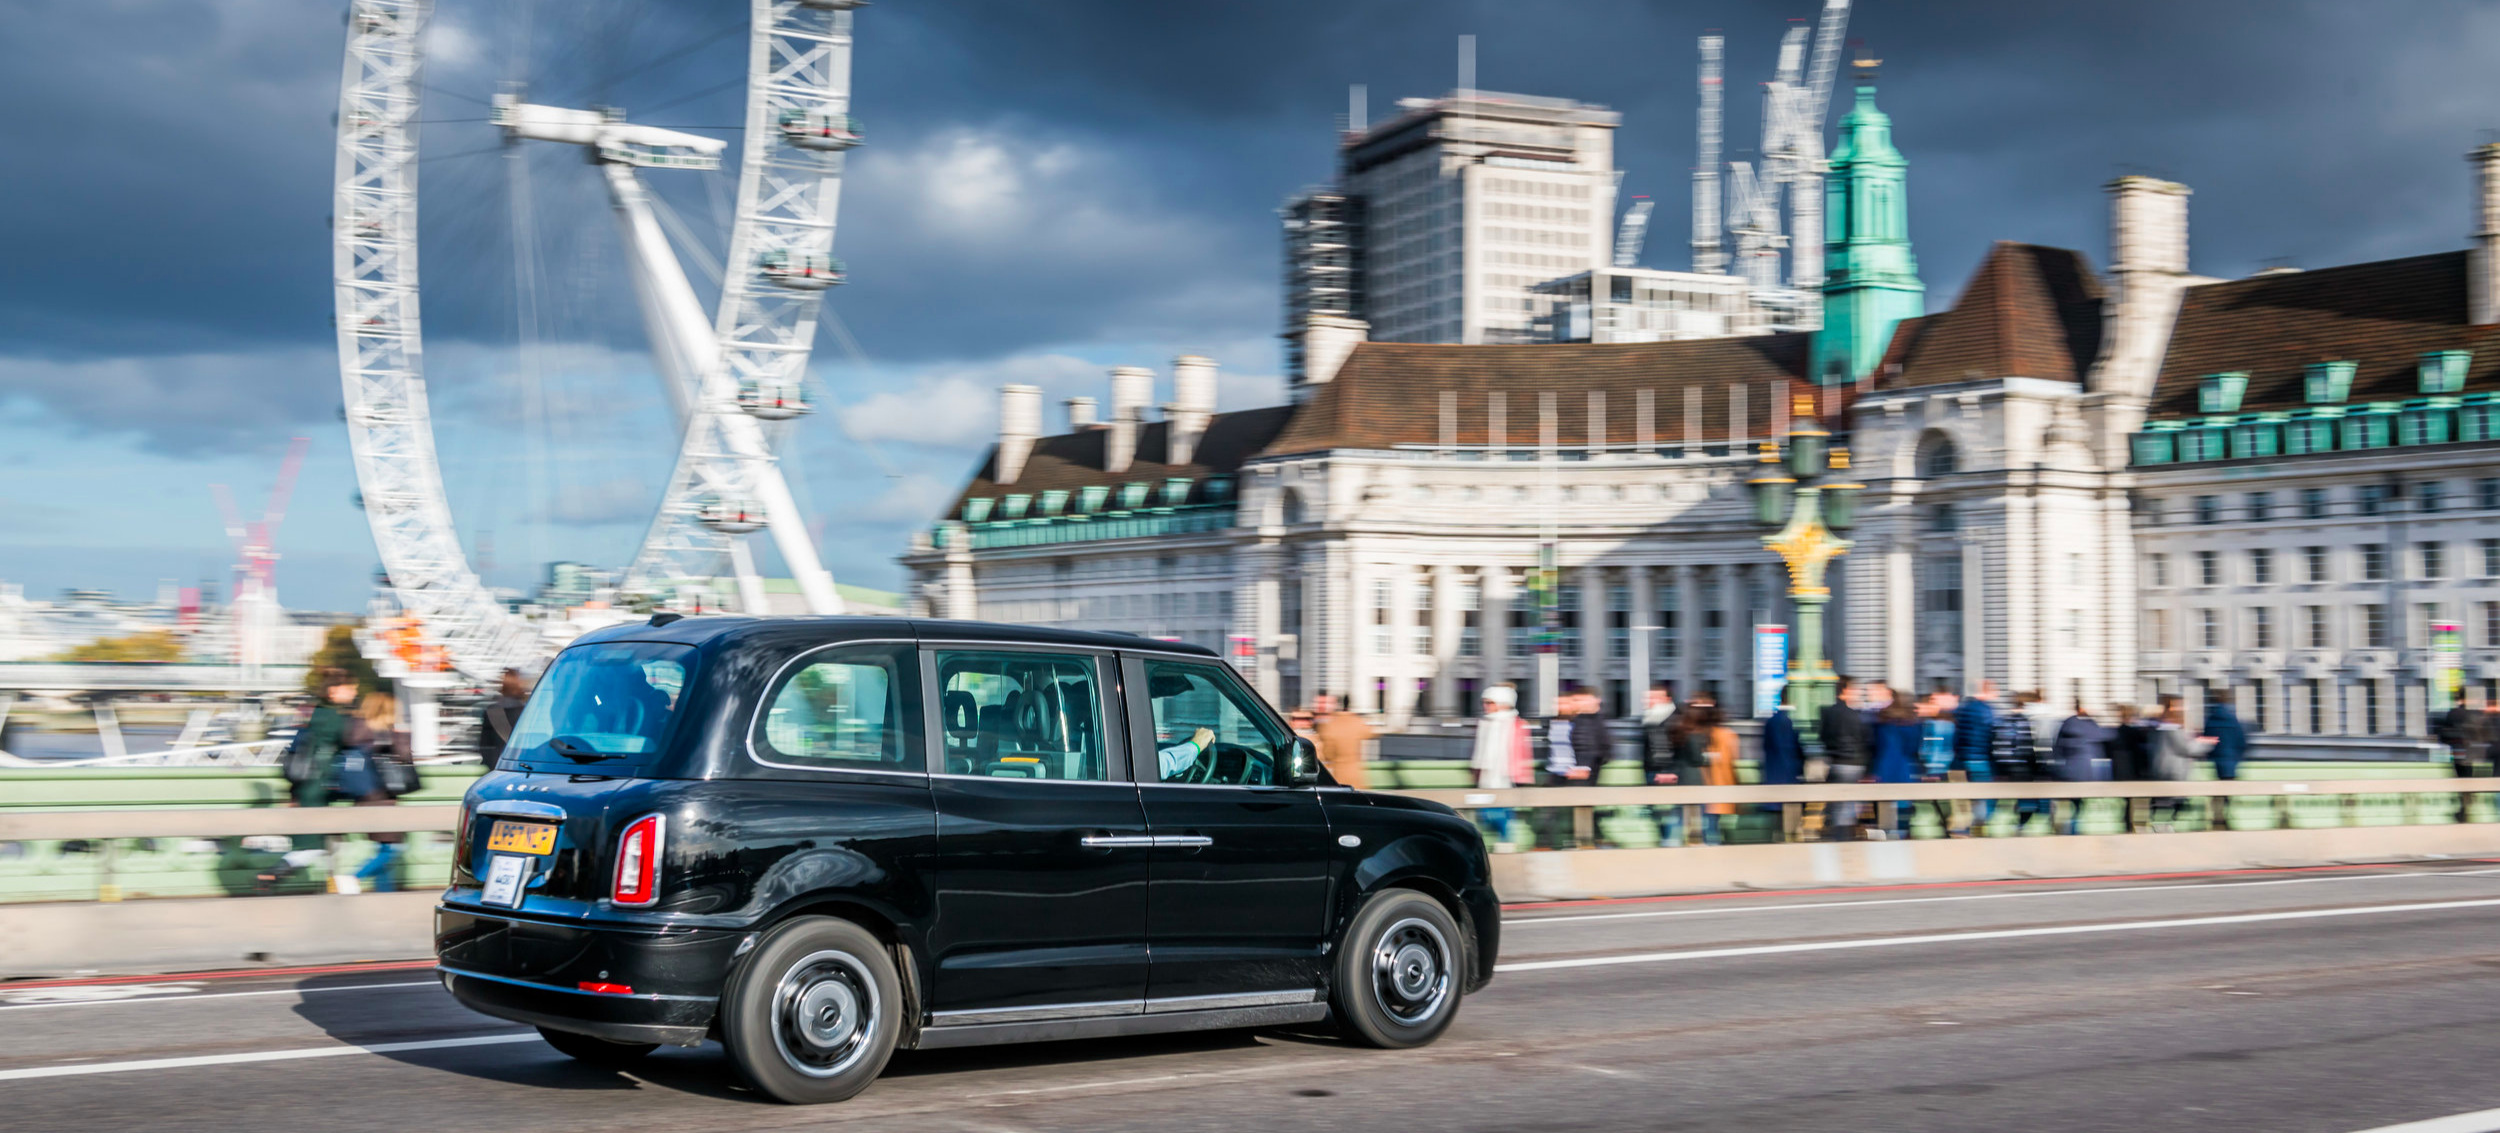 SIGHTSEEING TOURS - Private London sightseeing Taxi tours